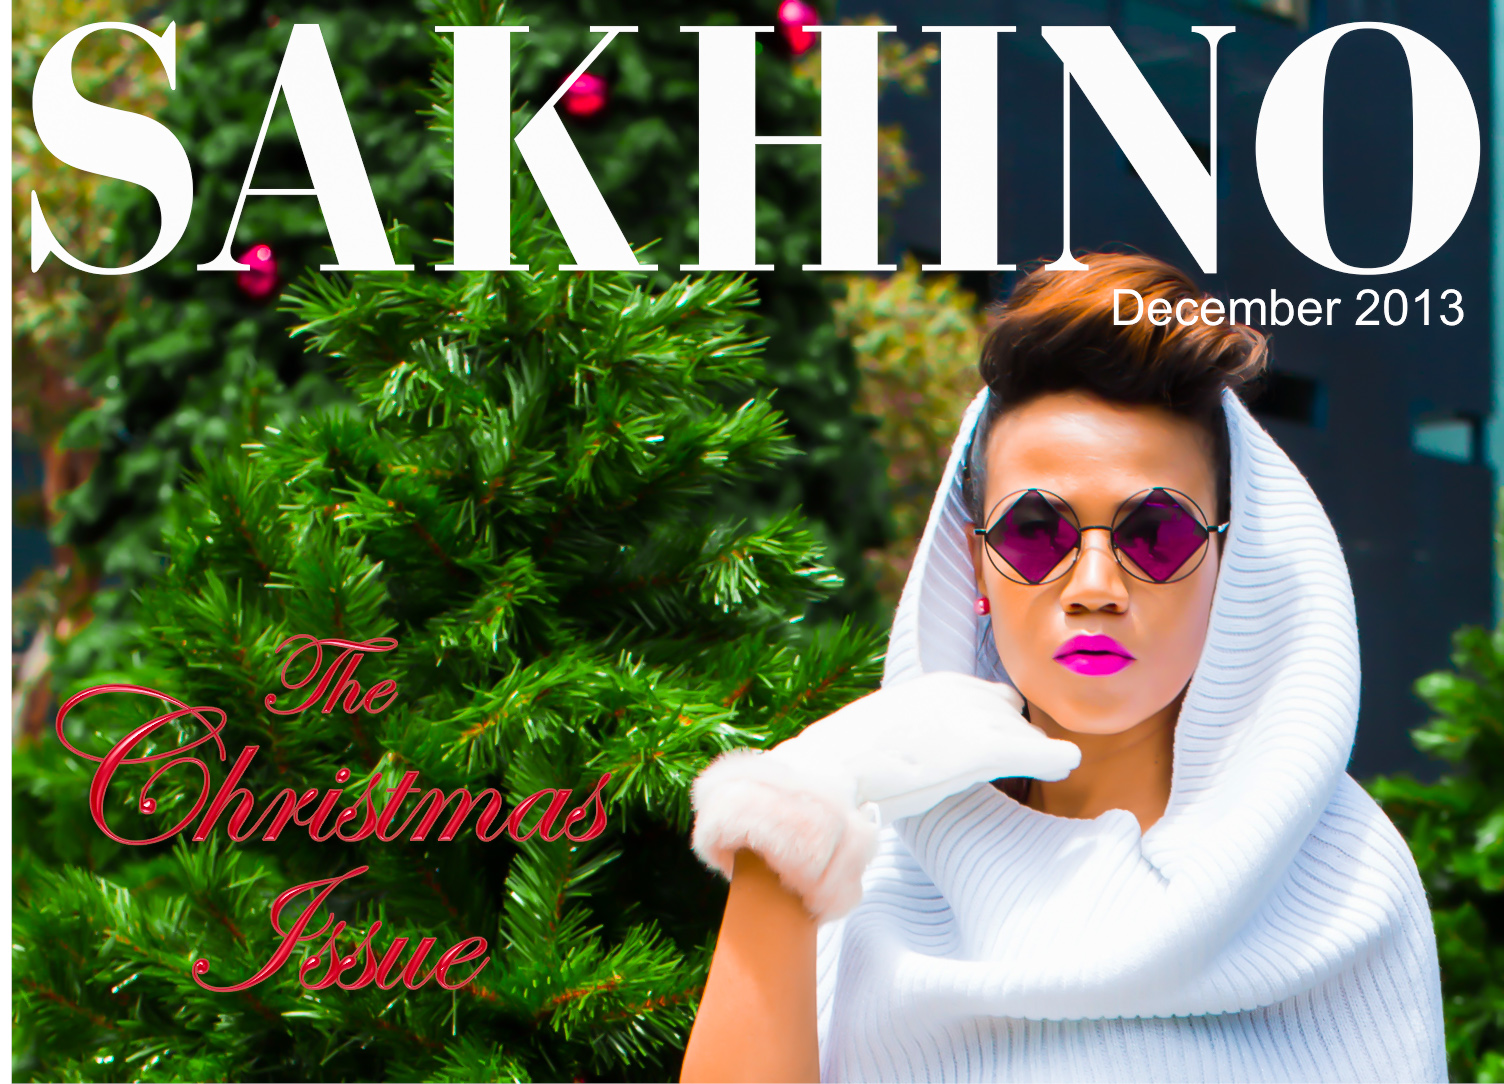 sakhino-best-online-magazine_december-issue-2013_vogue-december-cover_most-beautiful-fashion-blogger-melbourne_australia's-best-bloggers_asia's-best-fashion-blogger_africa's-best-fashion-blogger